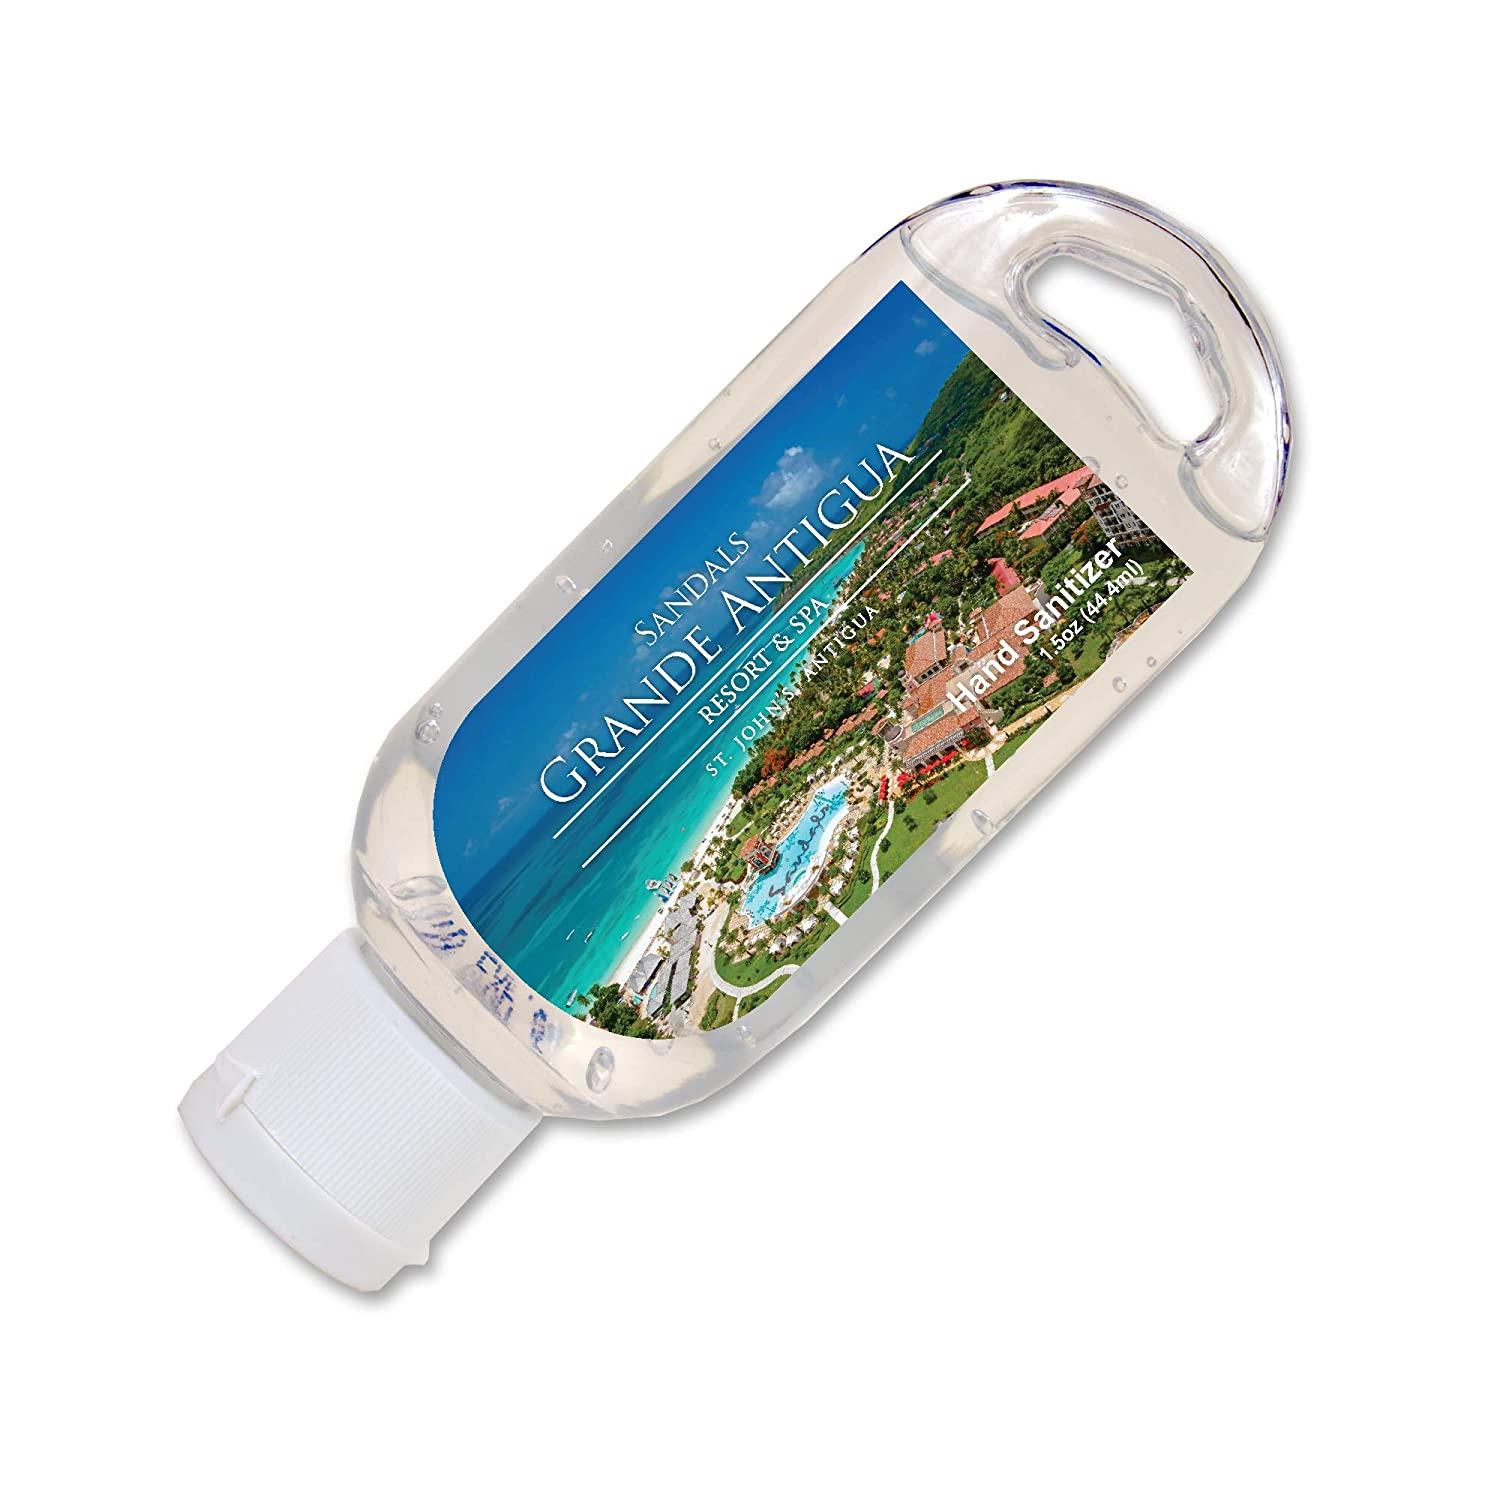 Customized Label Premium Hand Sanitizer—Bulk 100-Piece Pack—with Aloe Vera and Vitamin E for Moisturizers. Airline Approved 1.5 Oz Containers. Promotional Products for Business, Events.